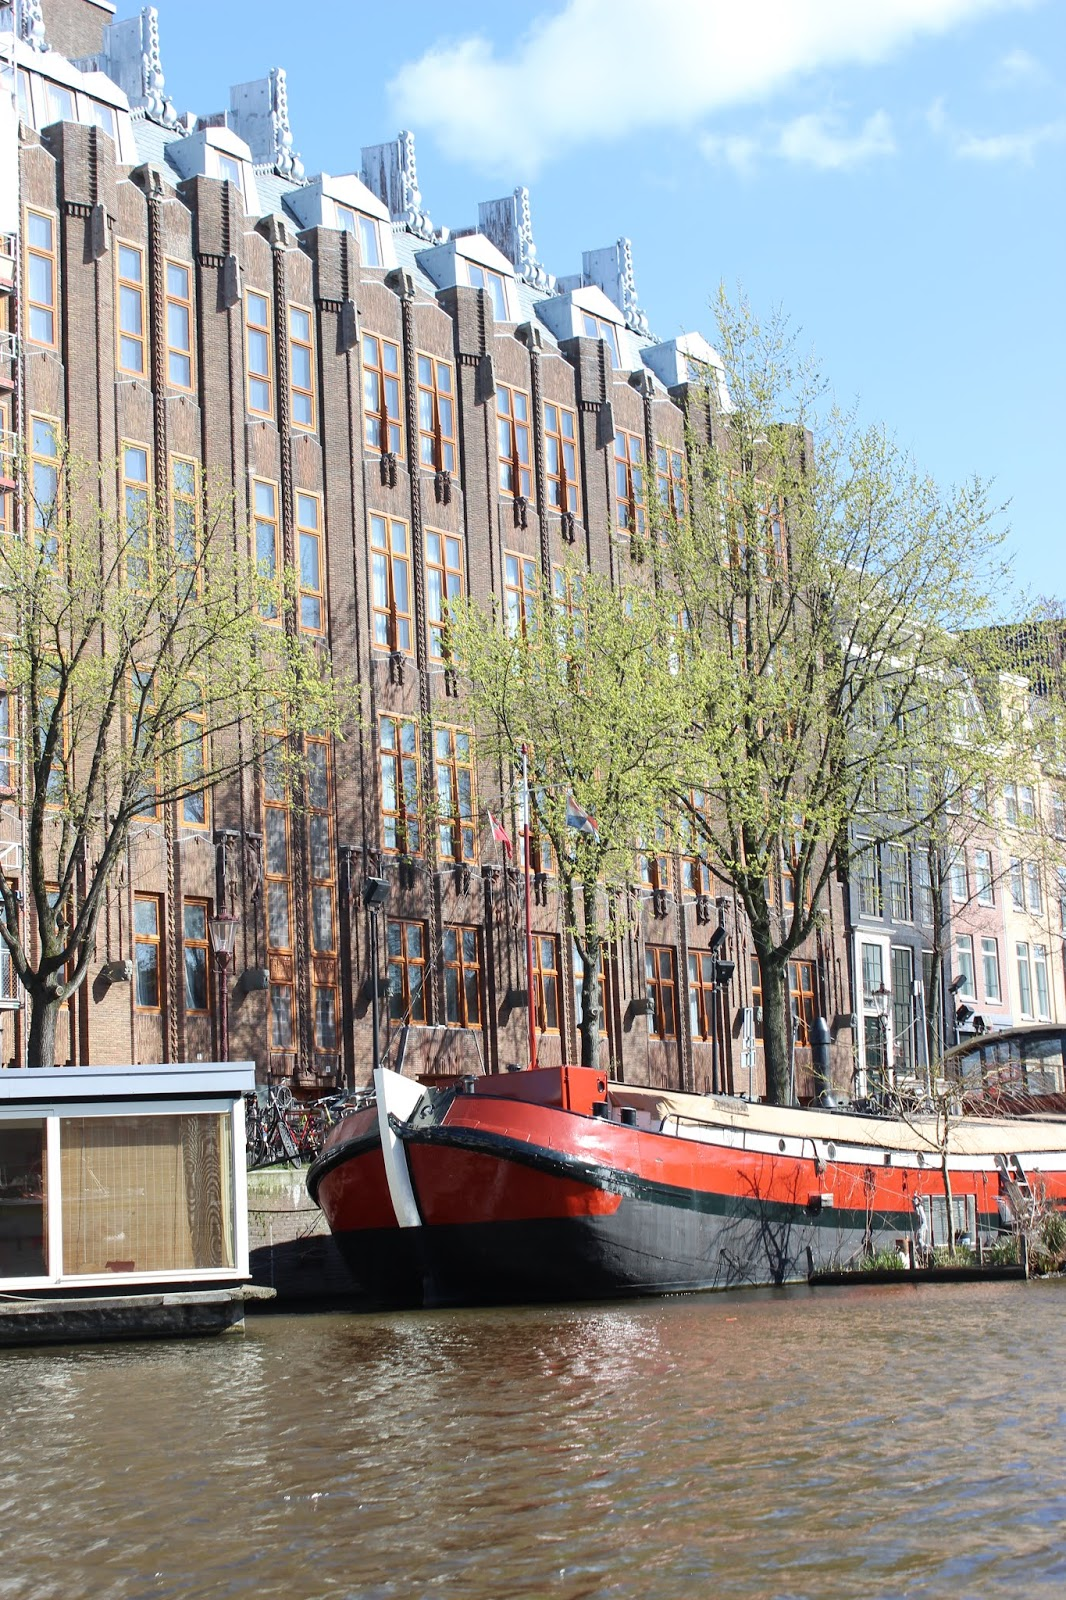 A residential canal boat in Amsterdam